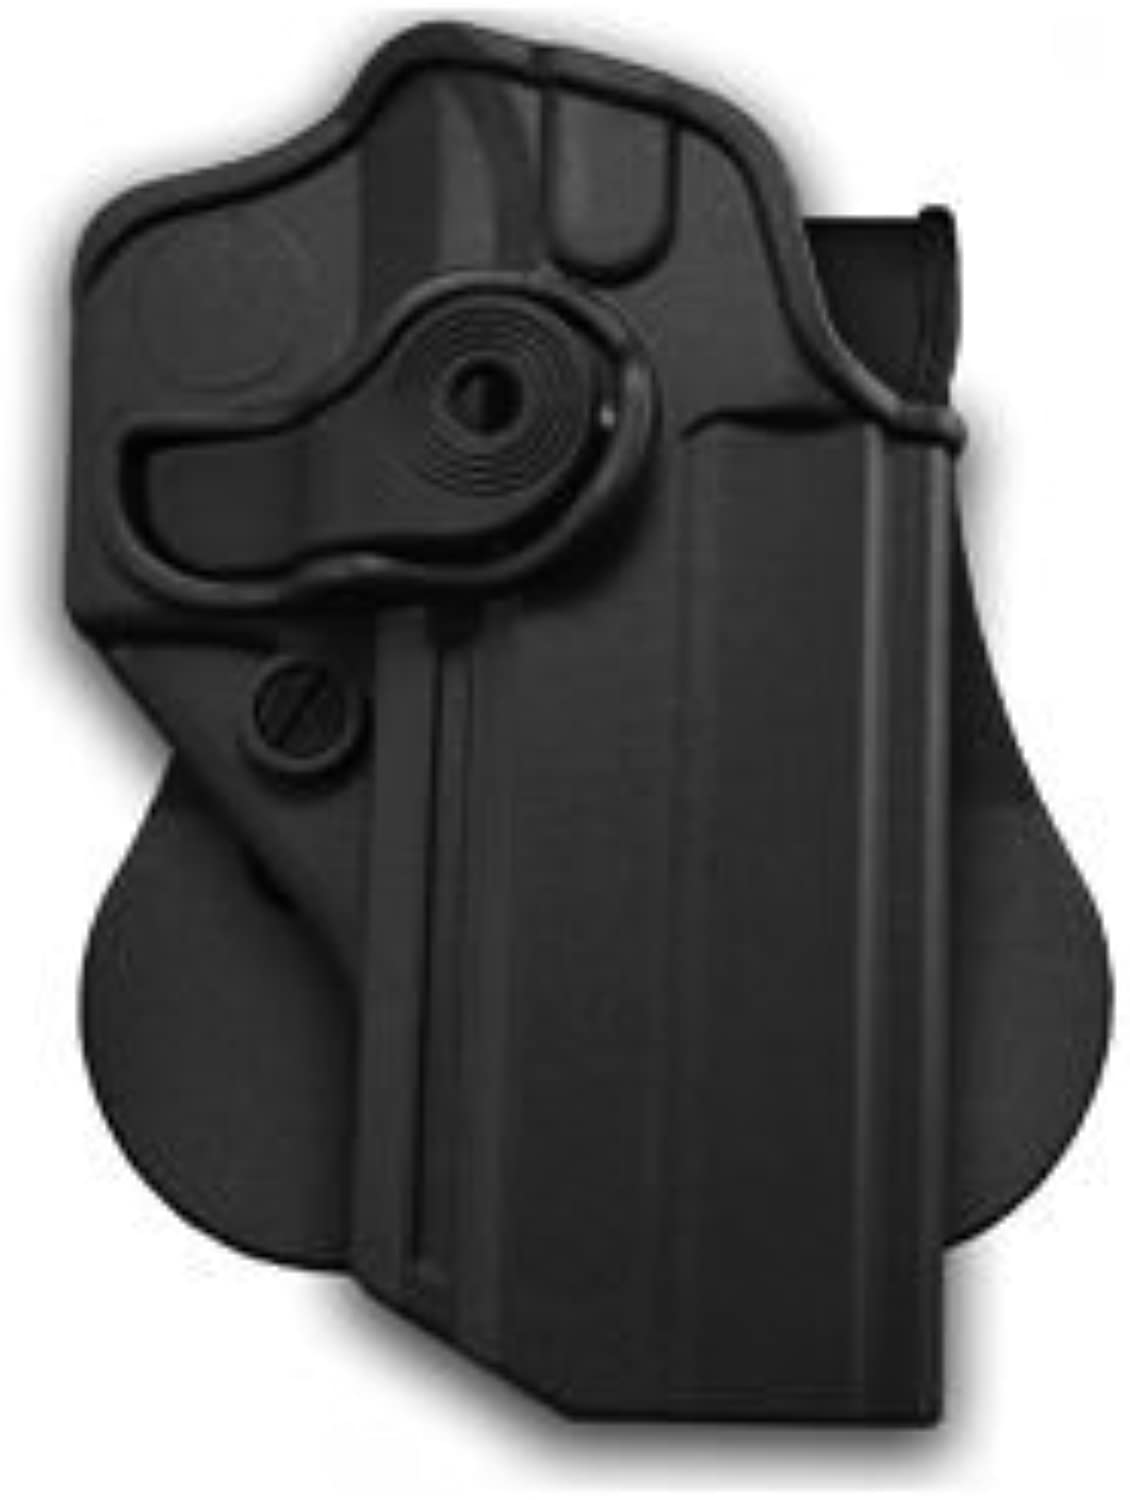 Jericho   Baby Eagle PSL (9mm .40) Polymer Holster Black. by IMI holsters, Israel.